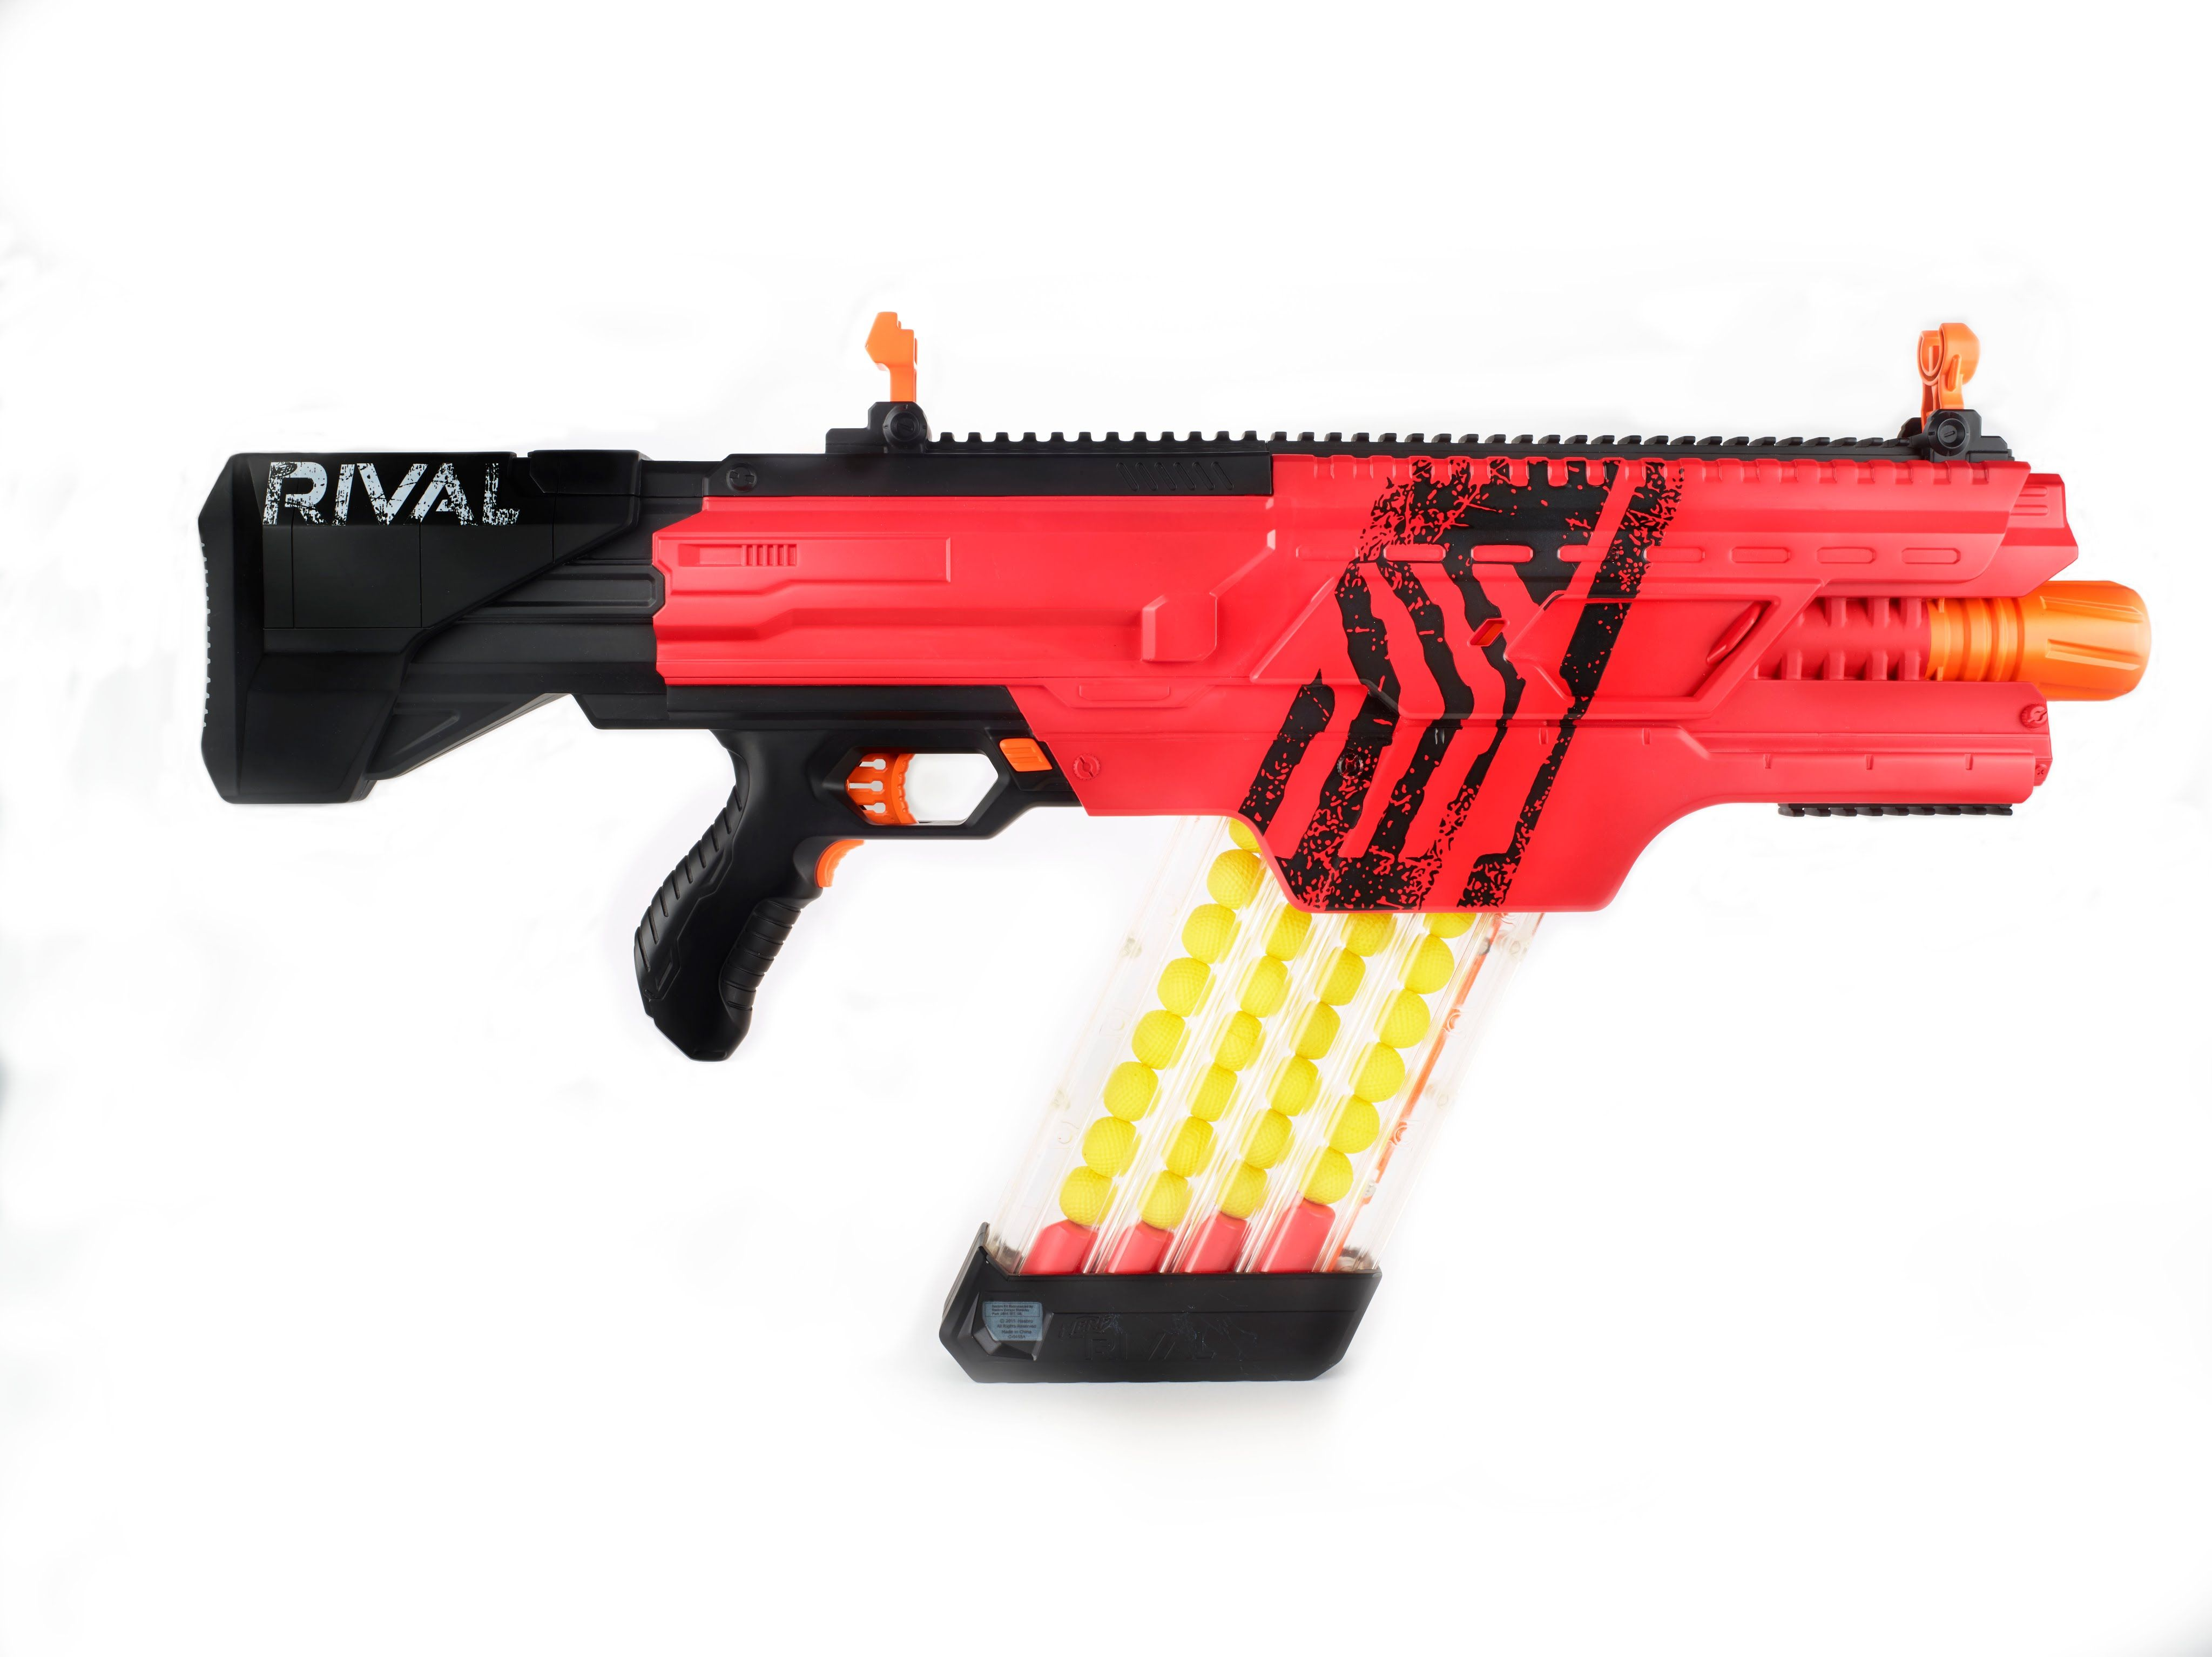 NERF RIVAL KHAOS MXVI 4000 Blaster First Look Toy Fair 2016